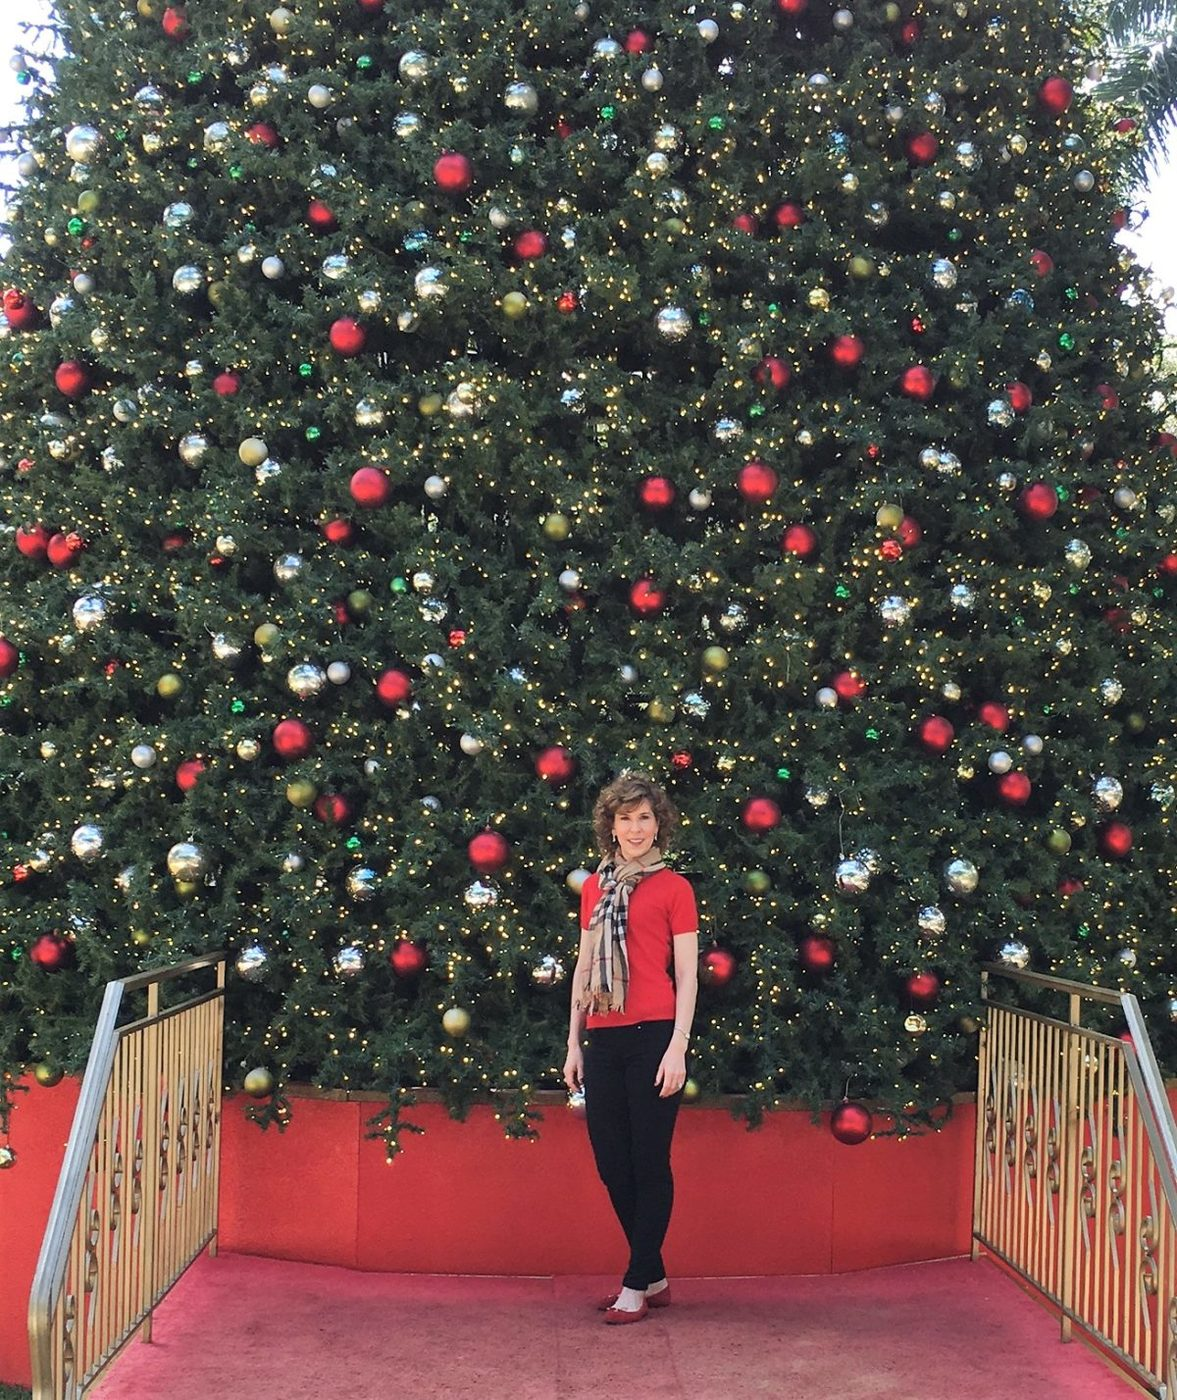 holidays in miami, christmas in miami, empty nester holiday getaway, merrick park christmas tree